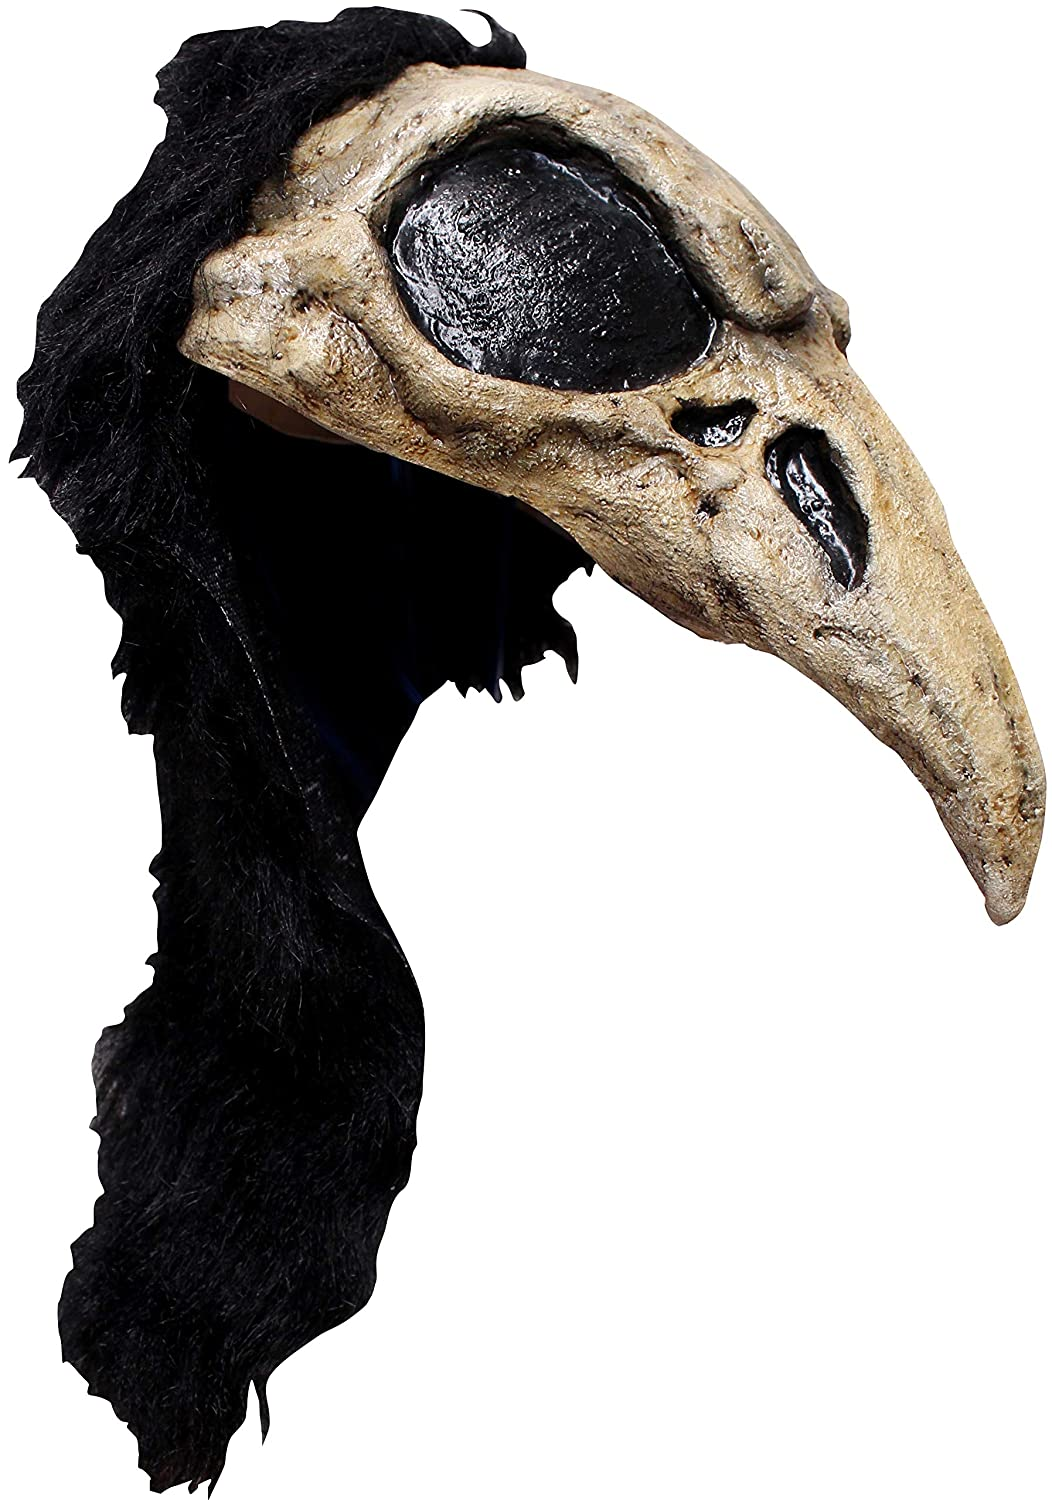 Crow Bird Skull Adult Latex Helmet Warrior Barbarian Raven Black Cosplay Larp Ghoulish Productions